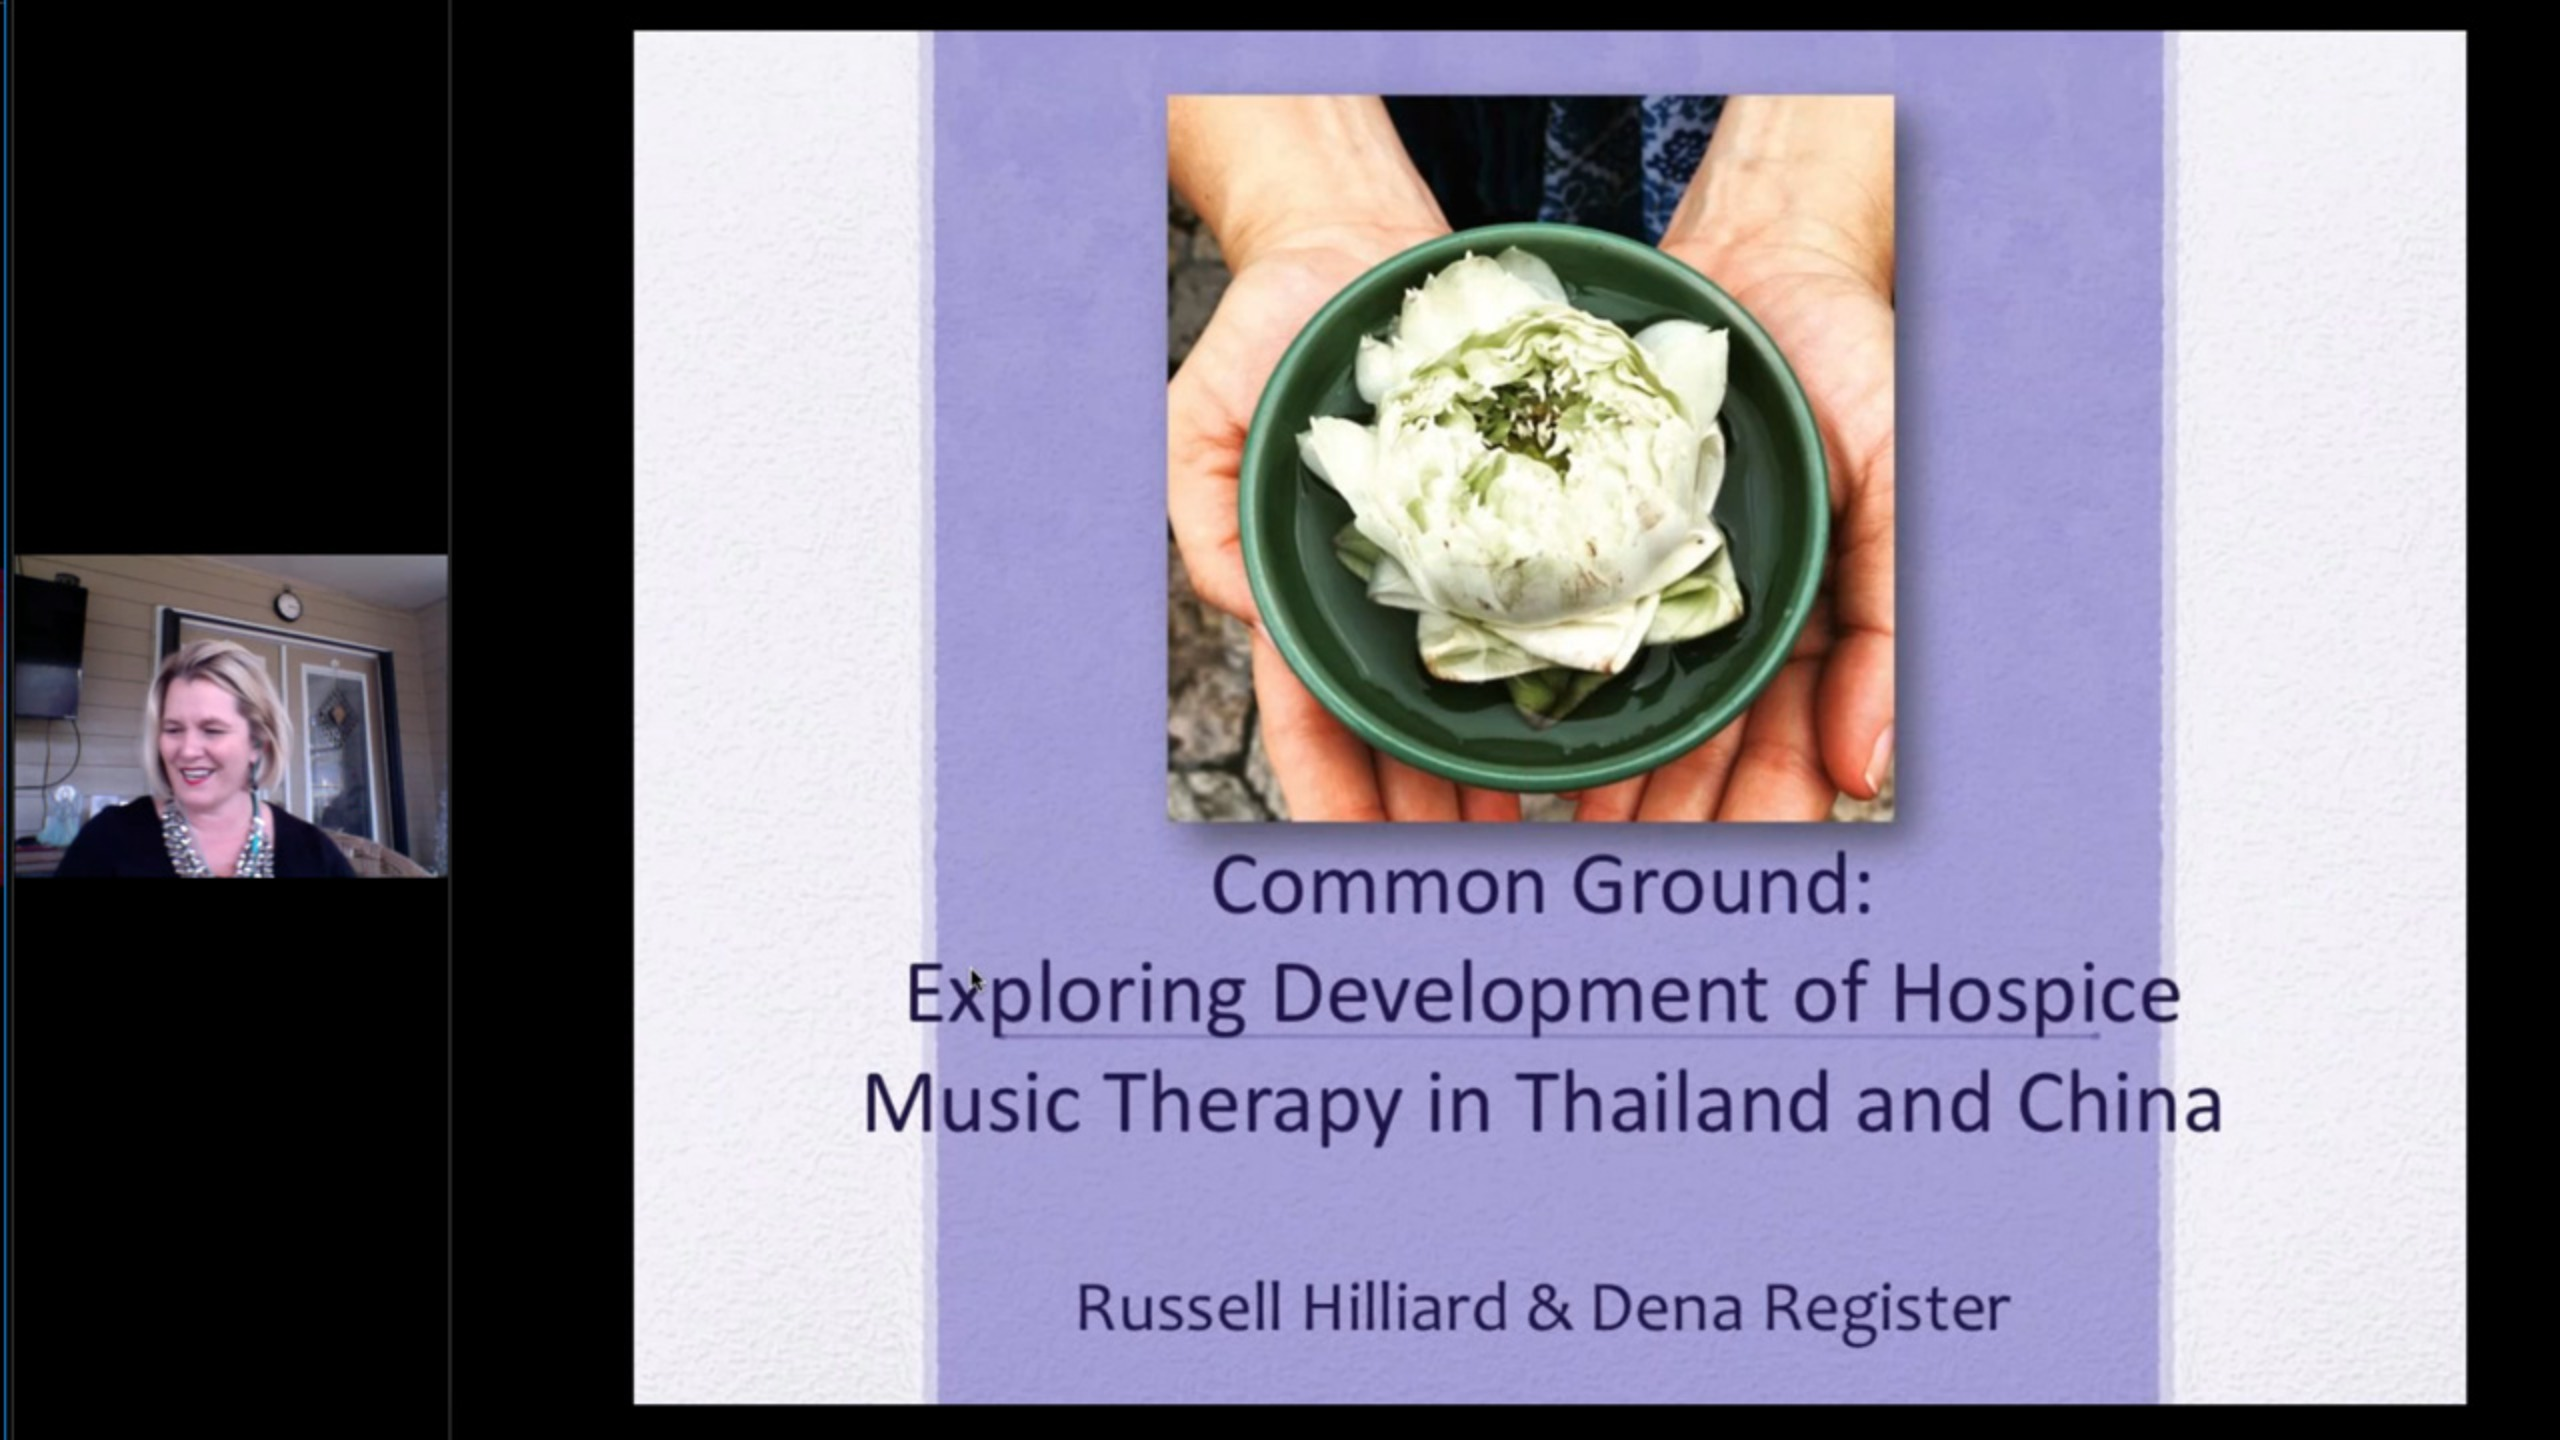 Common Ground: Exploring Development of Hospice Music Therapy in Thailand and China